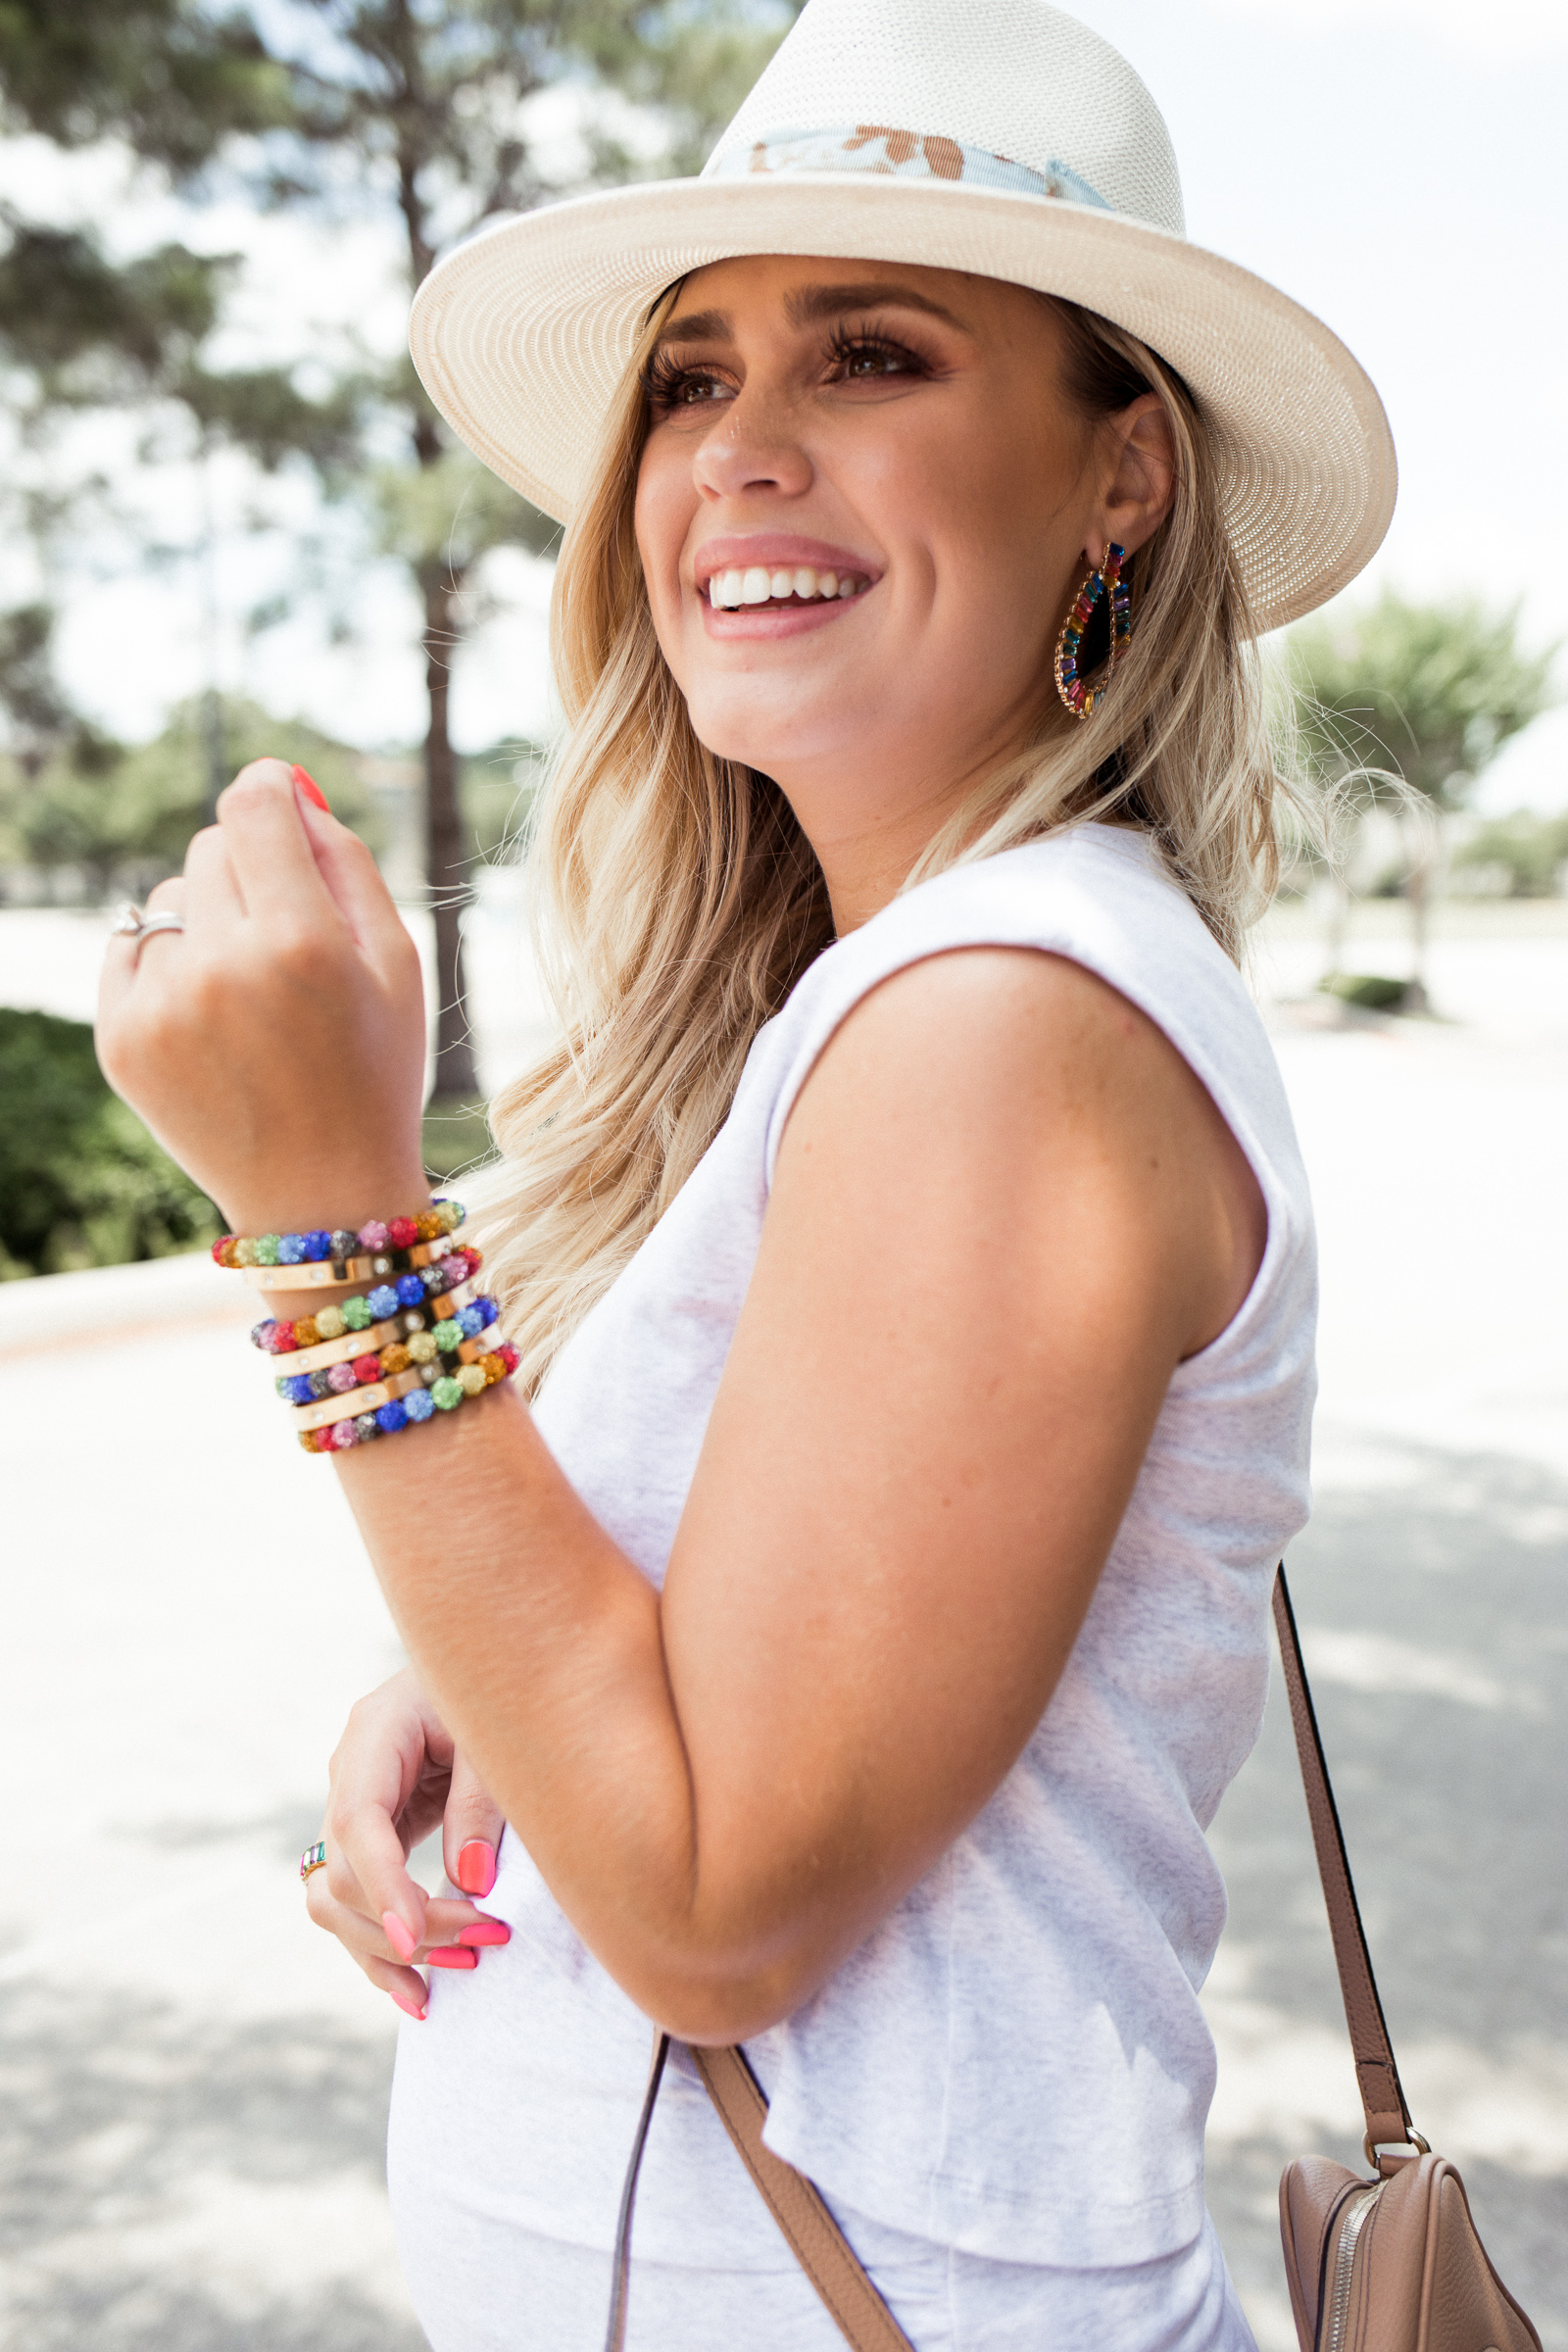 Houston fashion blogger Elly Brown wears Tenth street hat with Baublebar jewelry dupes